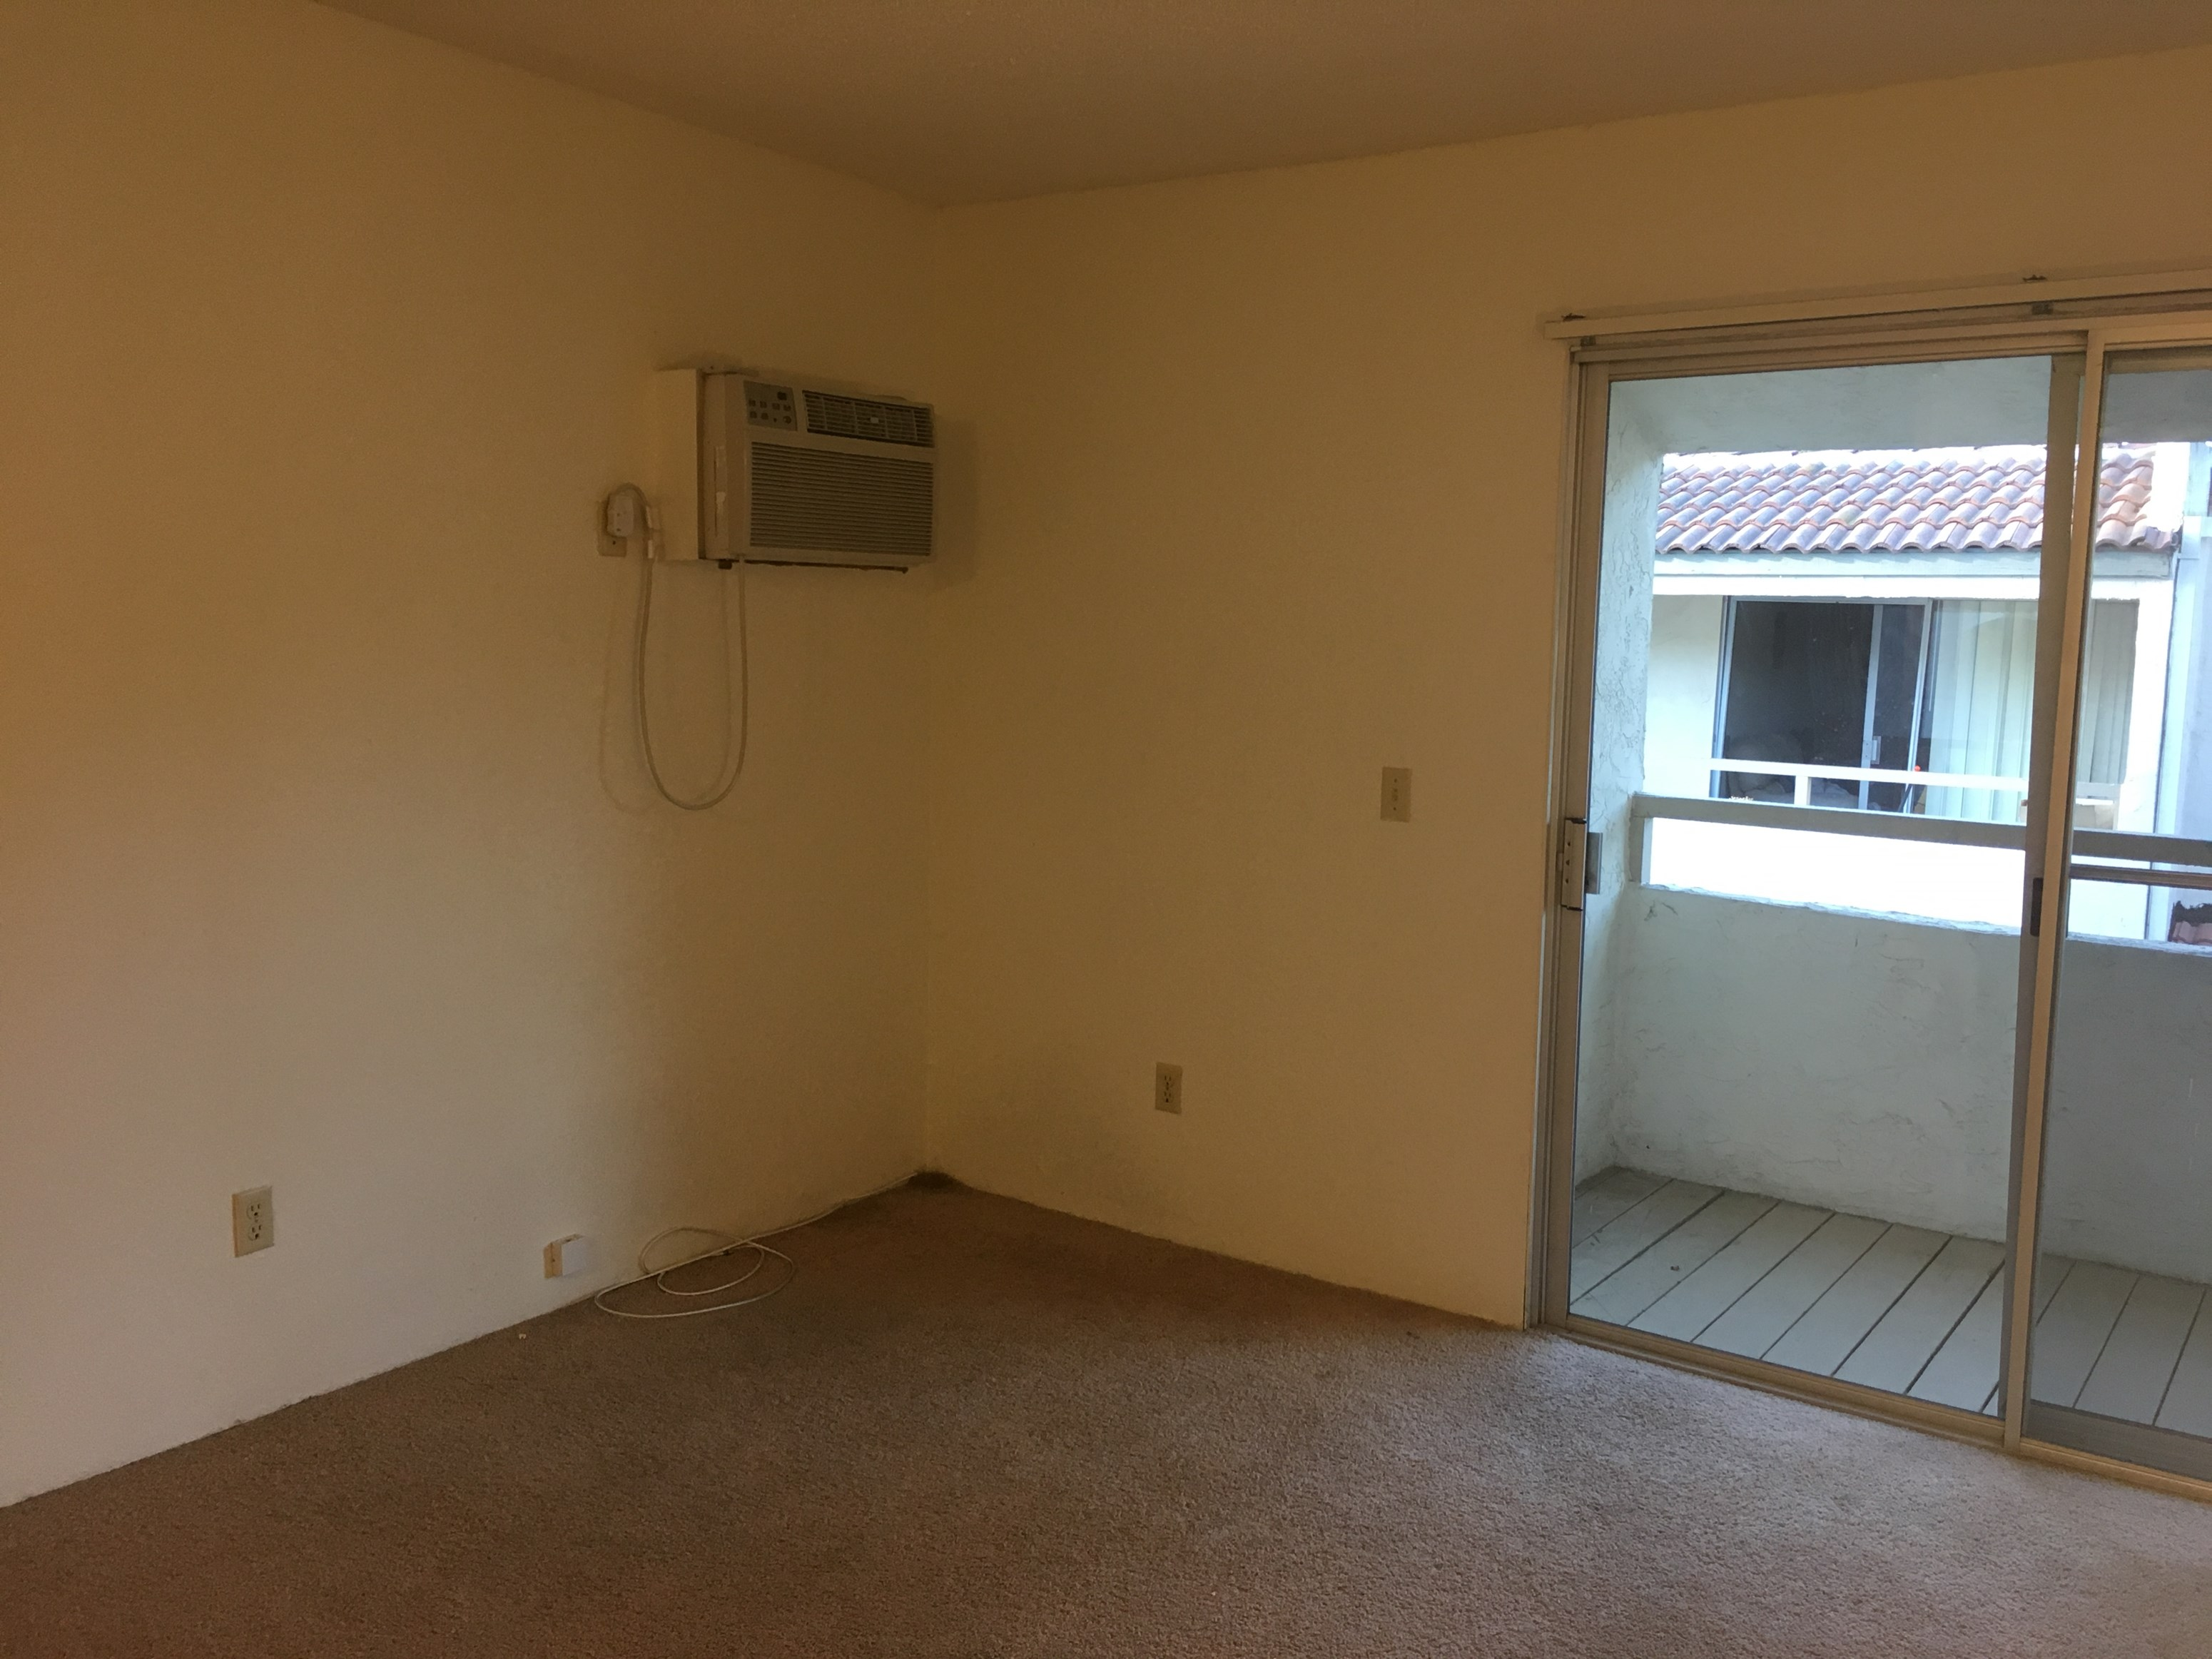 Single Room For Rent In San Diego Ca 978218 Sulekha Roommates